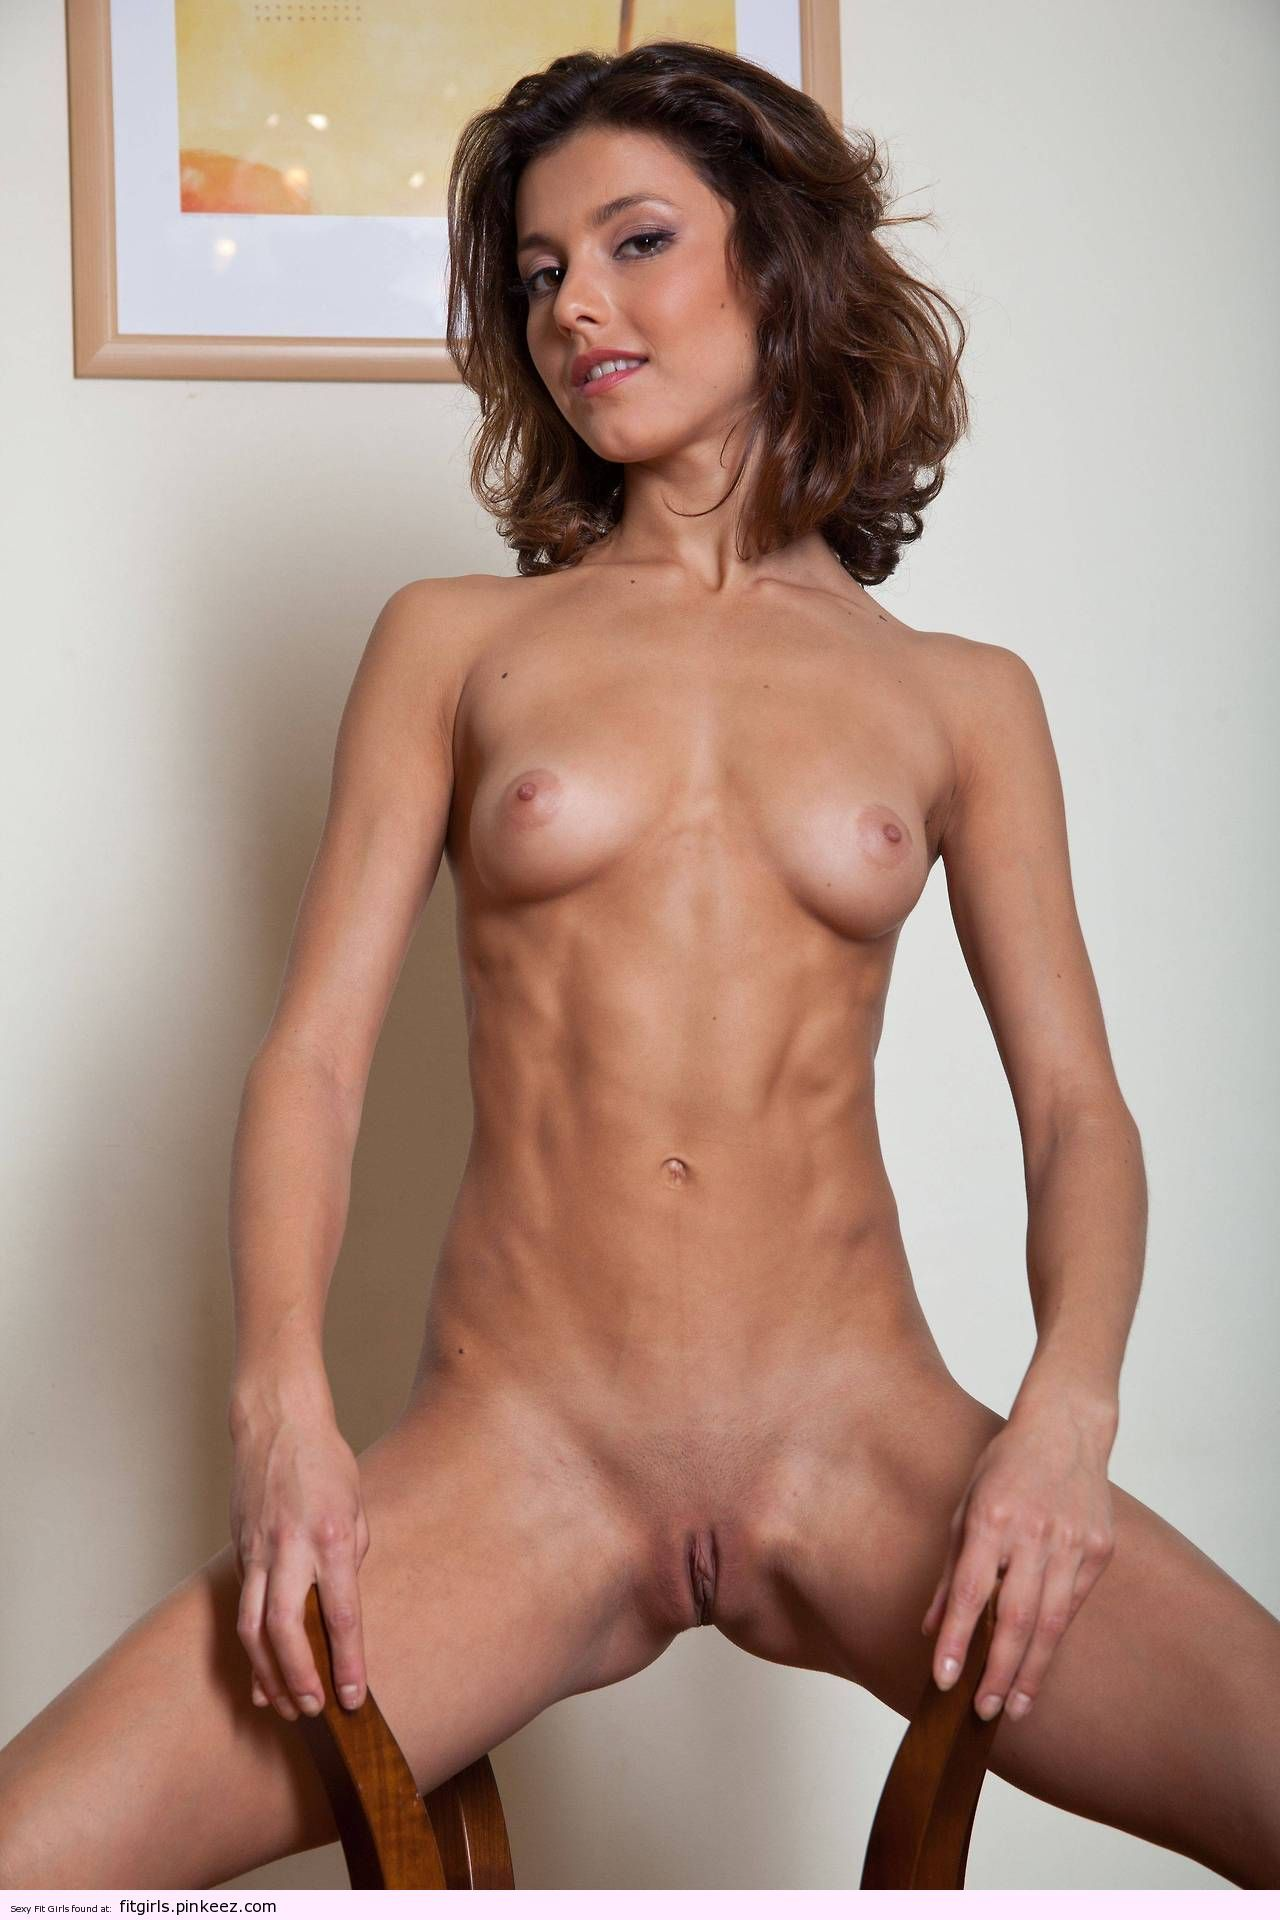 petite hard body females naked